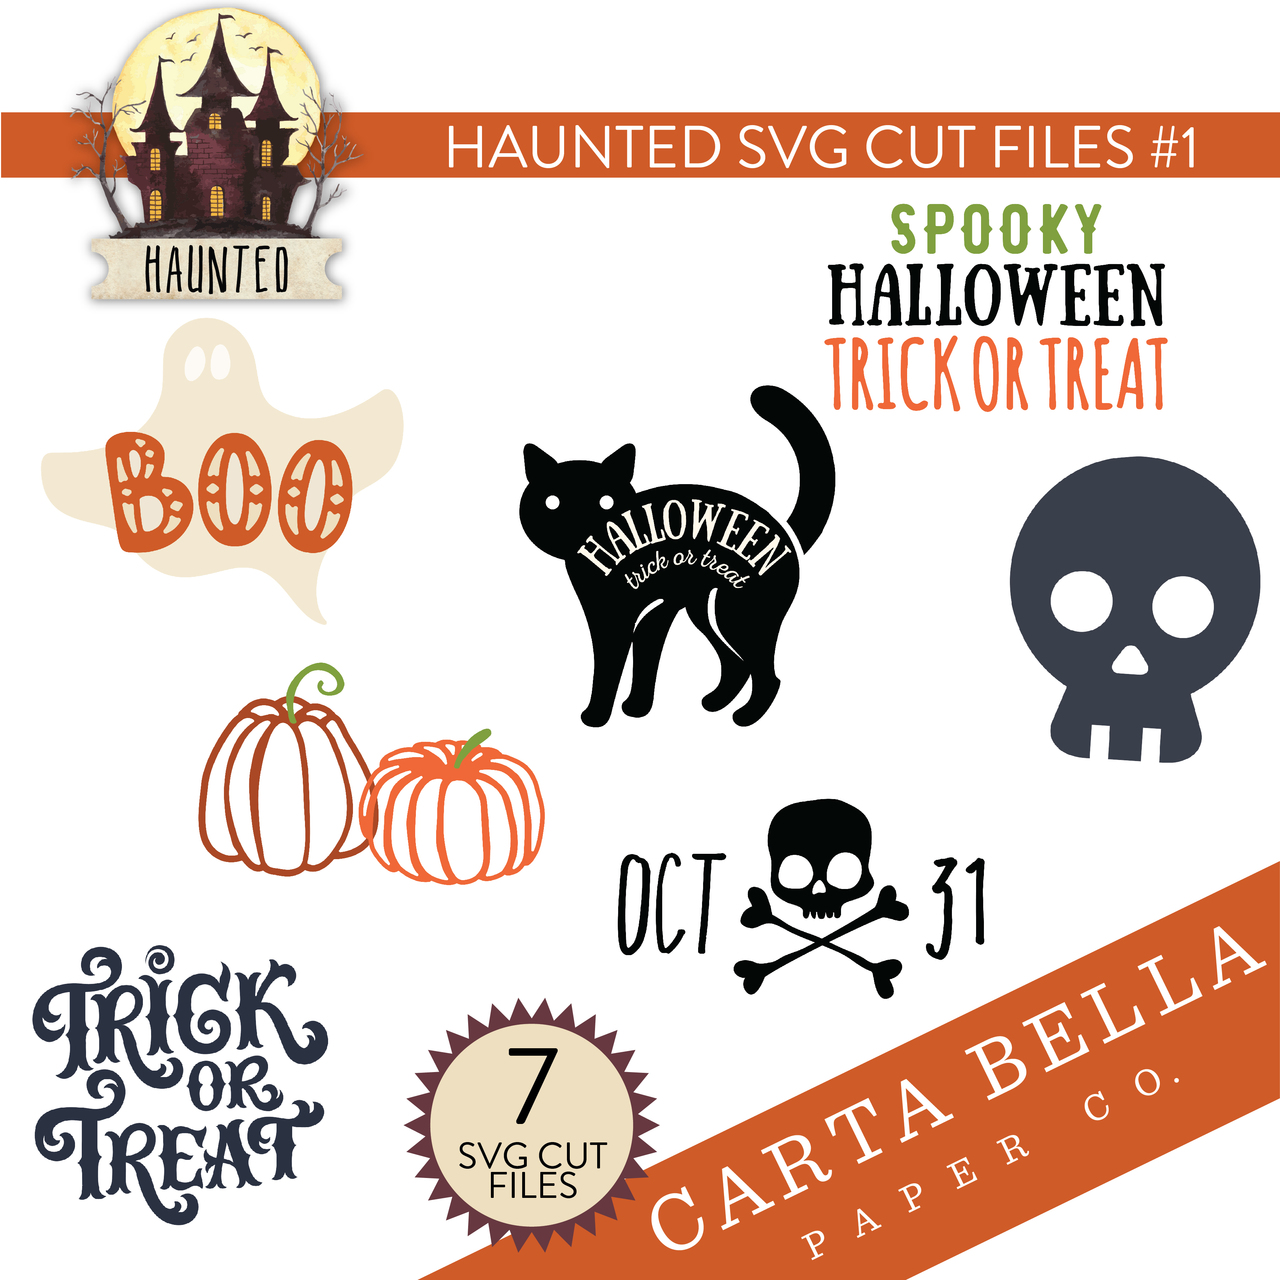 Haunted SVG Cut Files #1